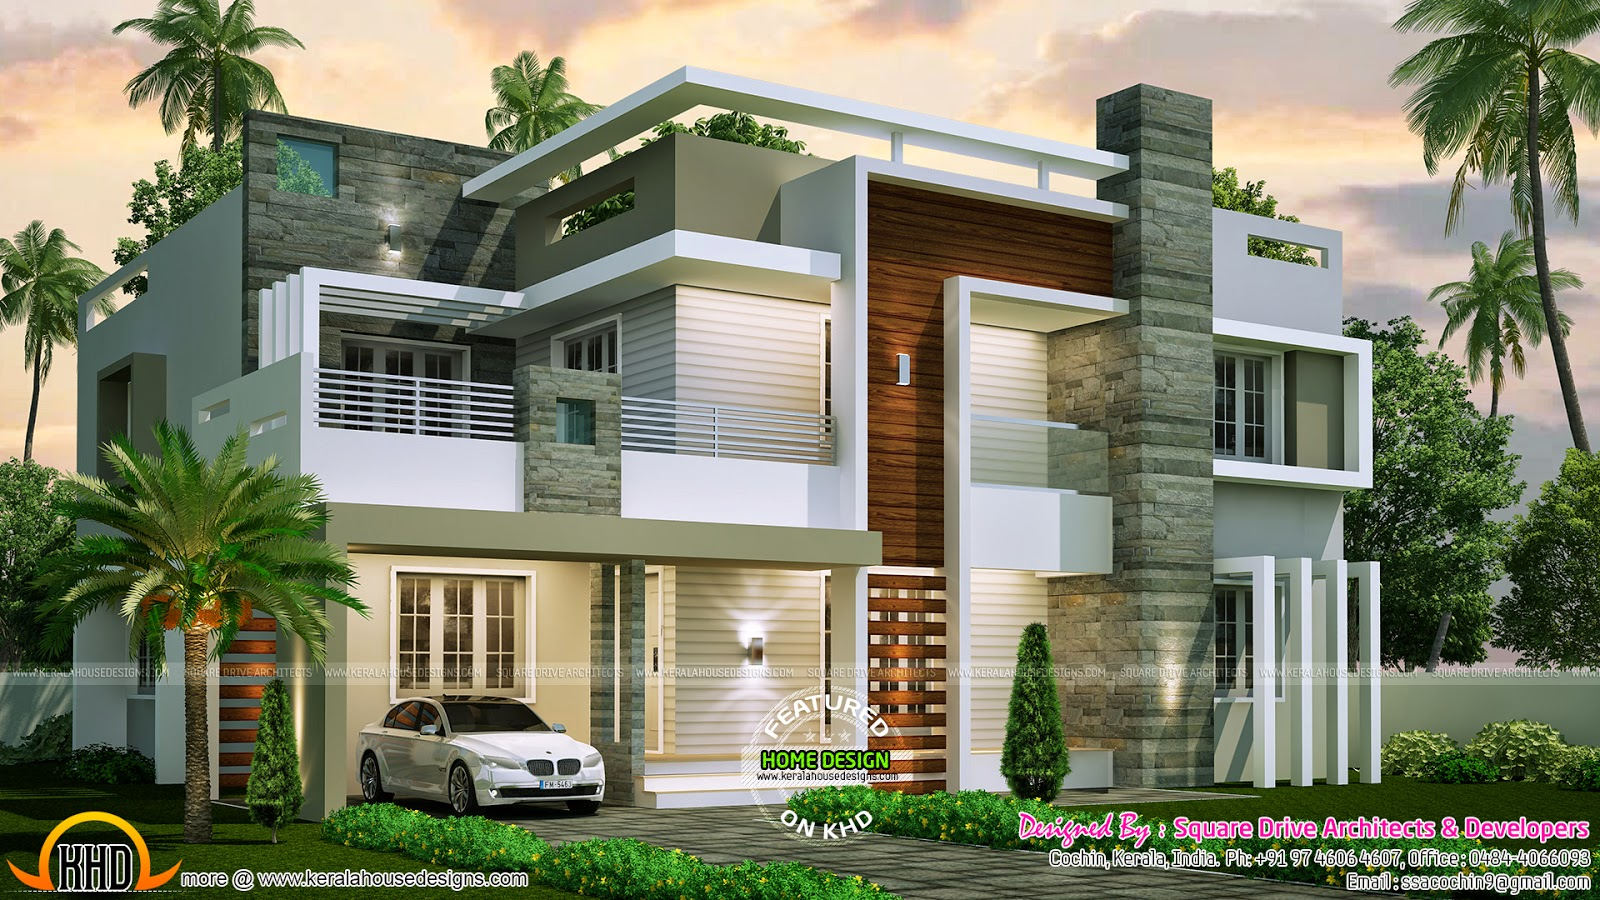 4 bedroom contemporary home design kerala home design for Contemporary style homes in kerala